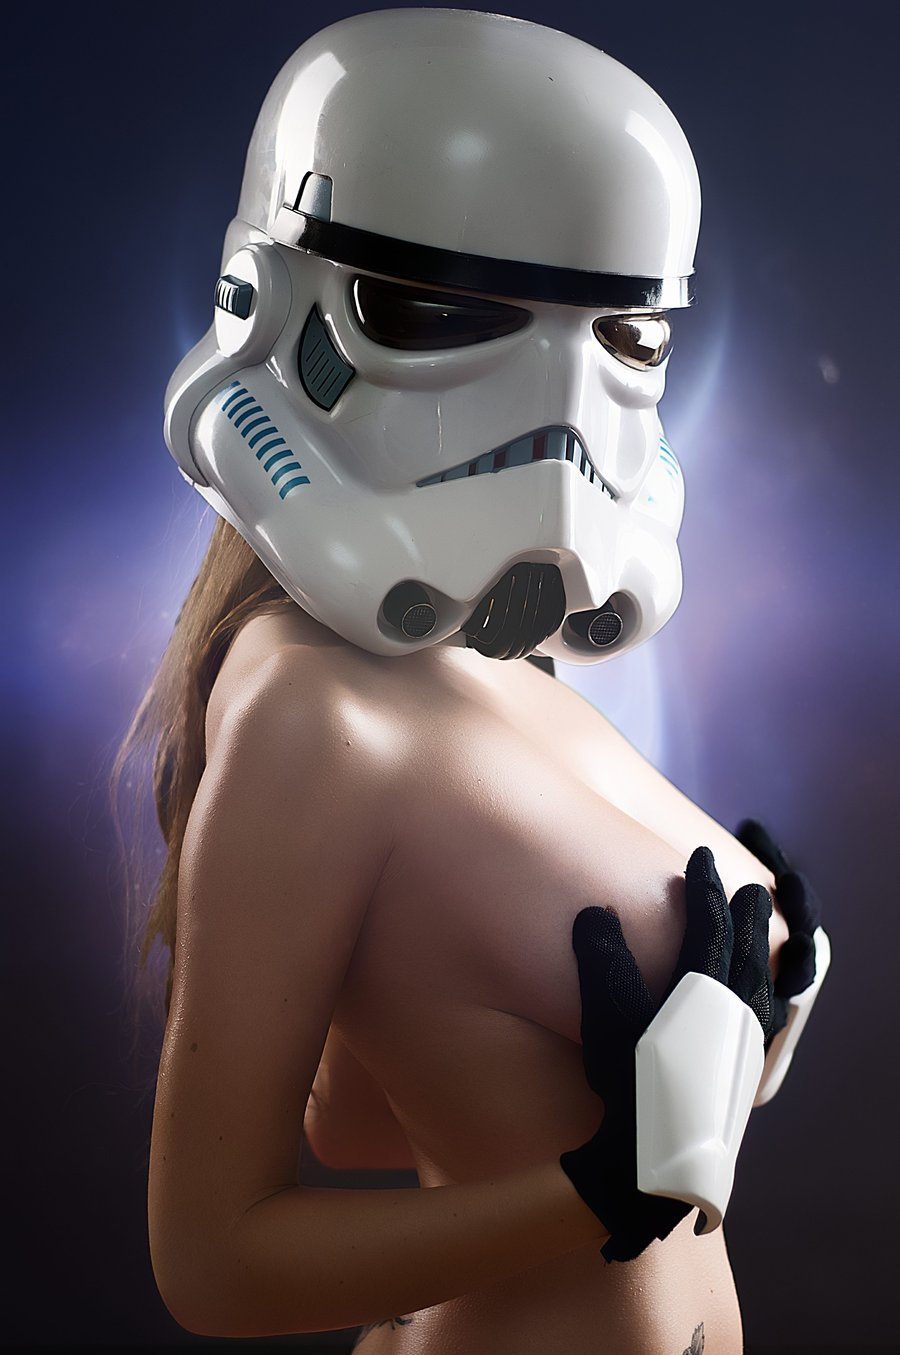 Hot nude star wars cosplay naked toons